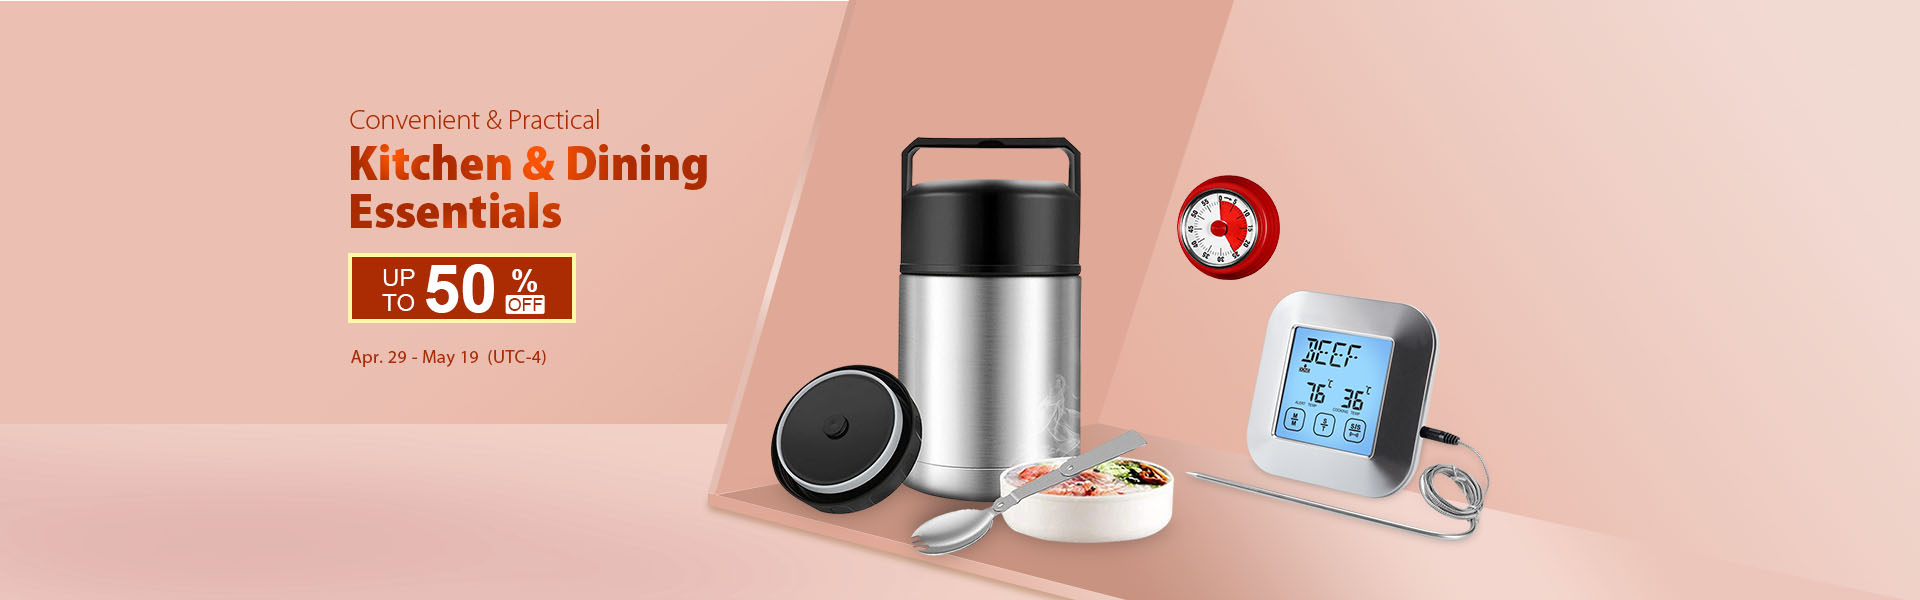 Up to 50% off on Kitchen & Dining Essentials